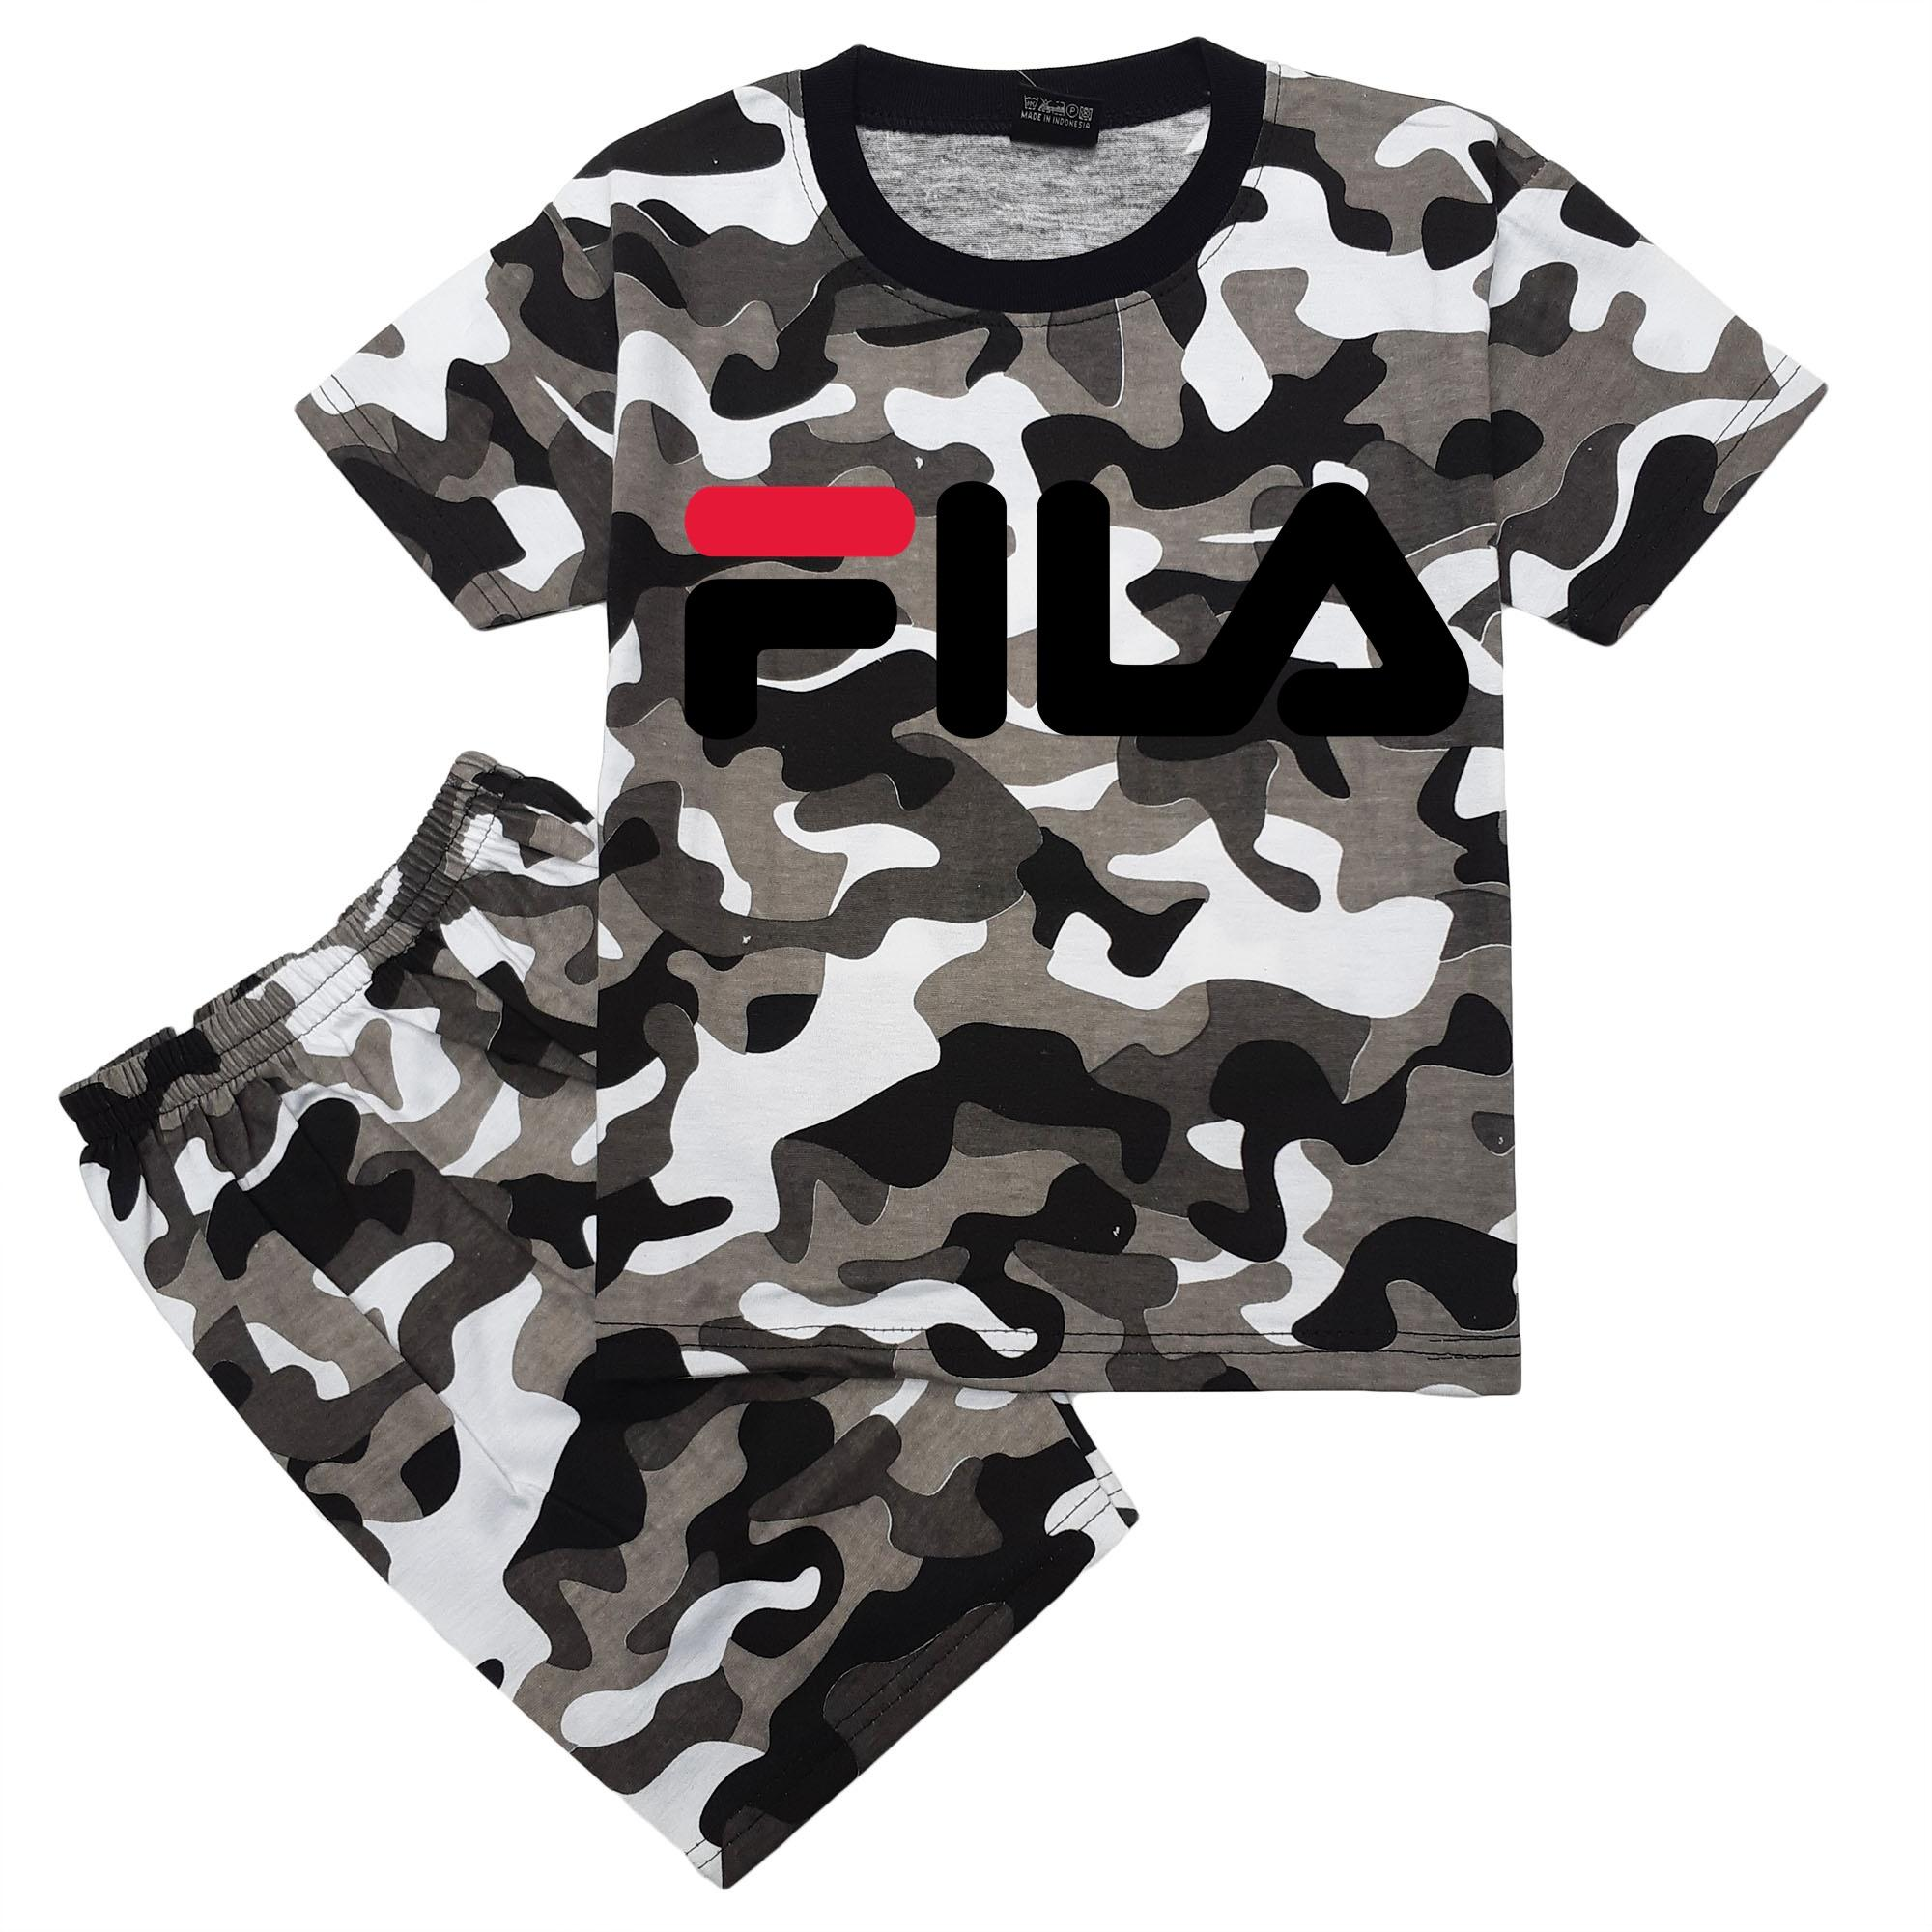 Hm Baju Setelan Anak Army Loreng By Hm Shopa Collection.